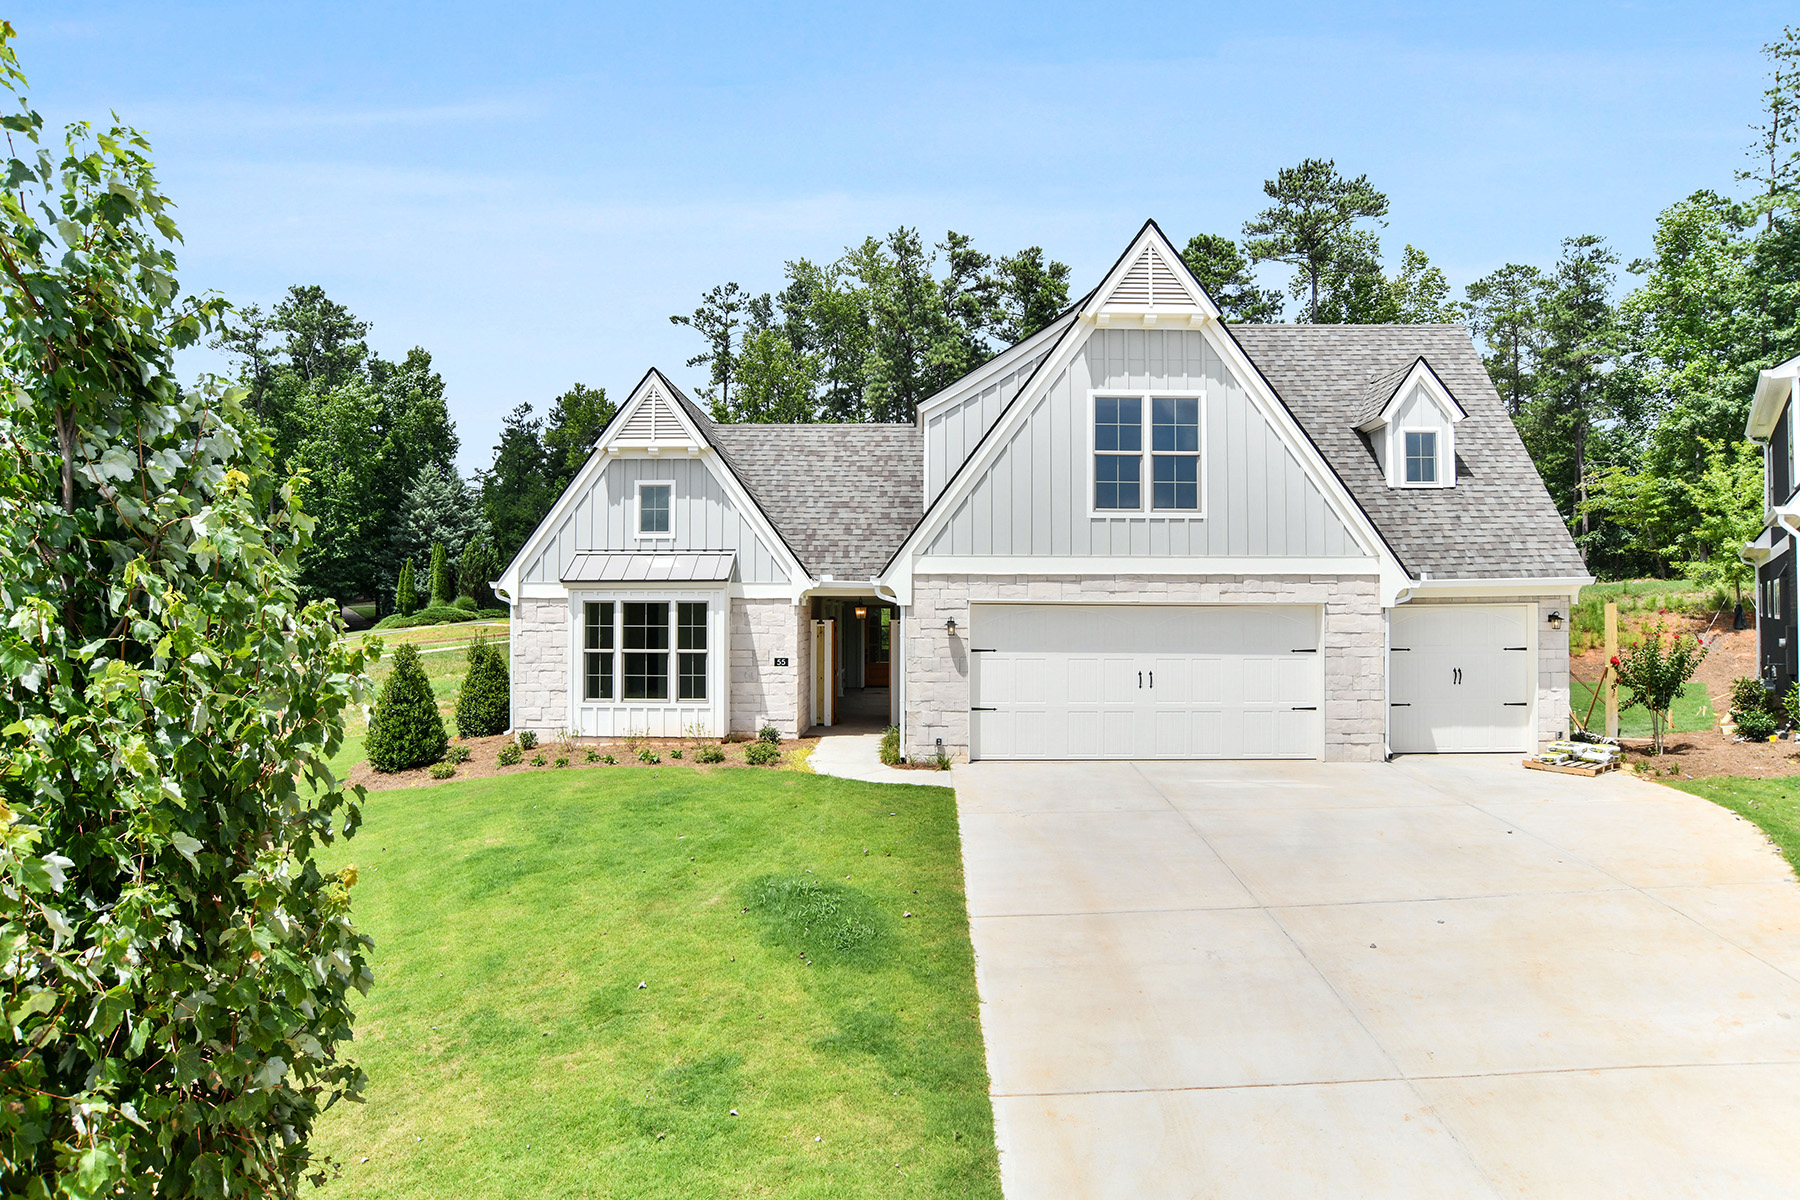 Single Family Homes のために 売買 アット New Construction Ranch With A Courtyard And Two Car Garage In 55 Plus Community 55 Arbor Garden Circle, Newnan, ジョージア 30265 アメリカ